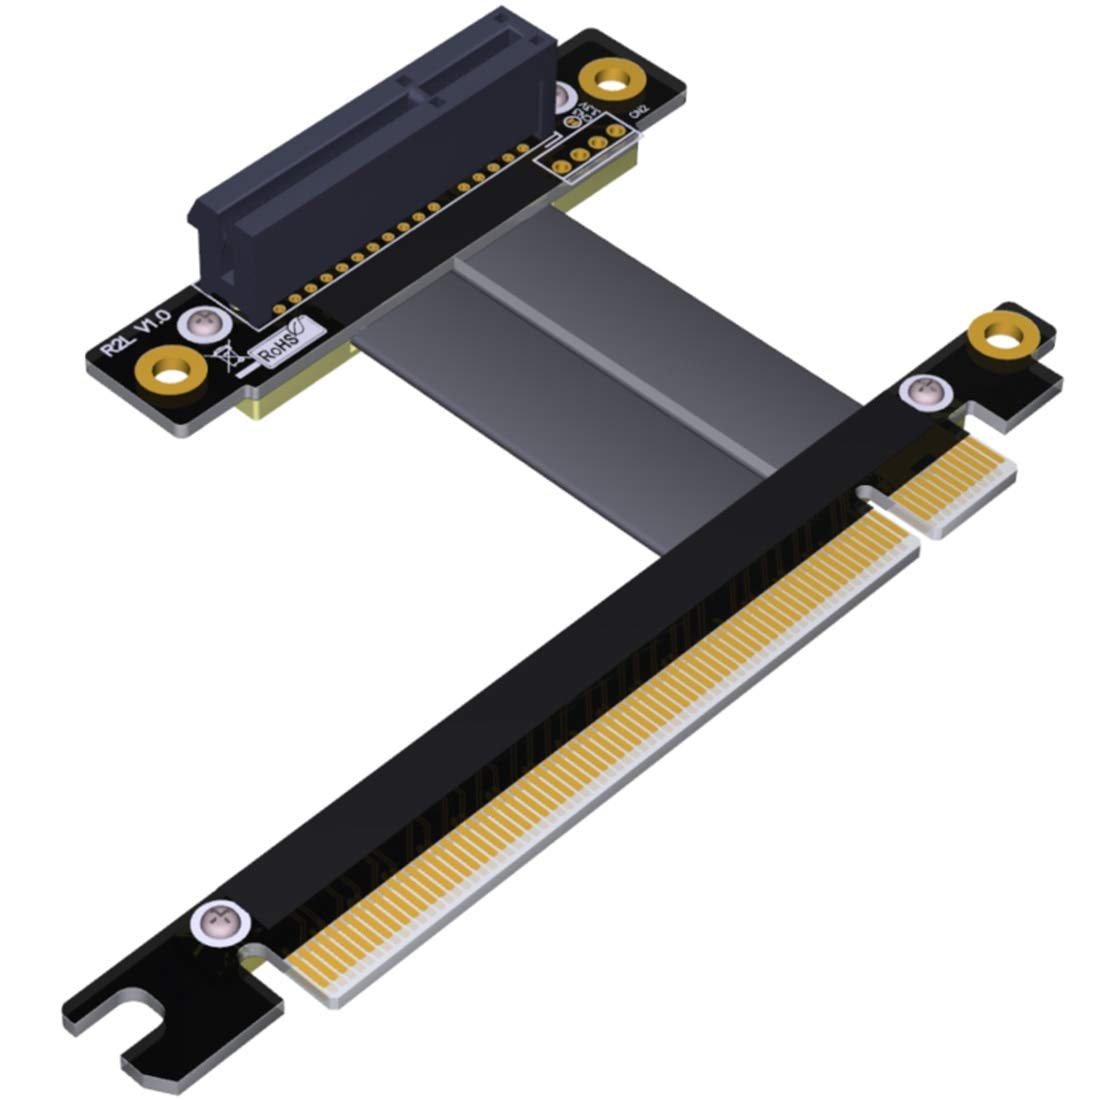 ADT-Link PCIe 3.0 X4 X8 Riser Extender for Gigabit Network Card Industrial SSD Pci-e 3.0 X4 X8 to X16 Extension PCI-Express 3.0 Cable (10cm,R32SF)